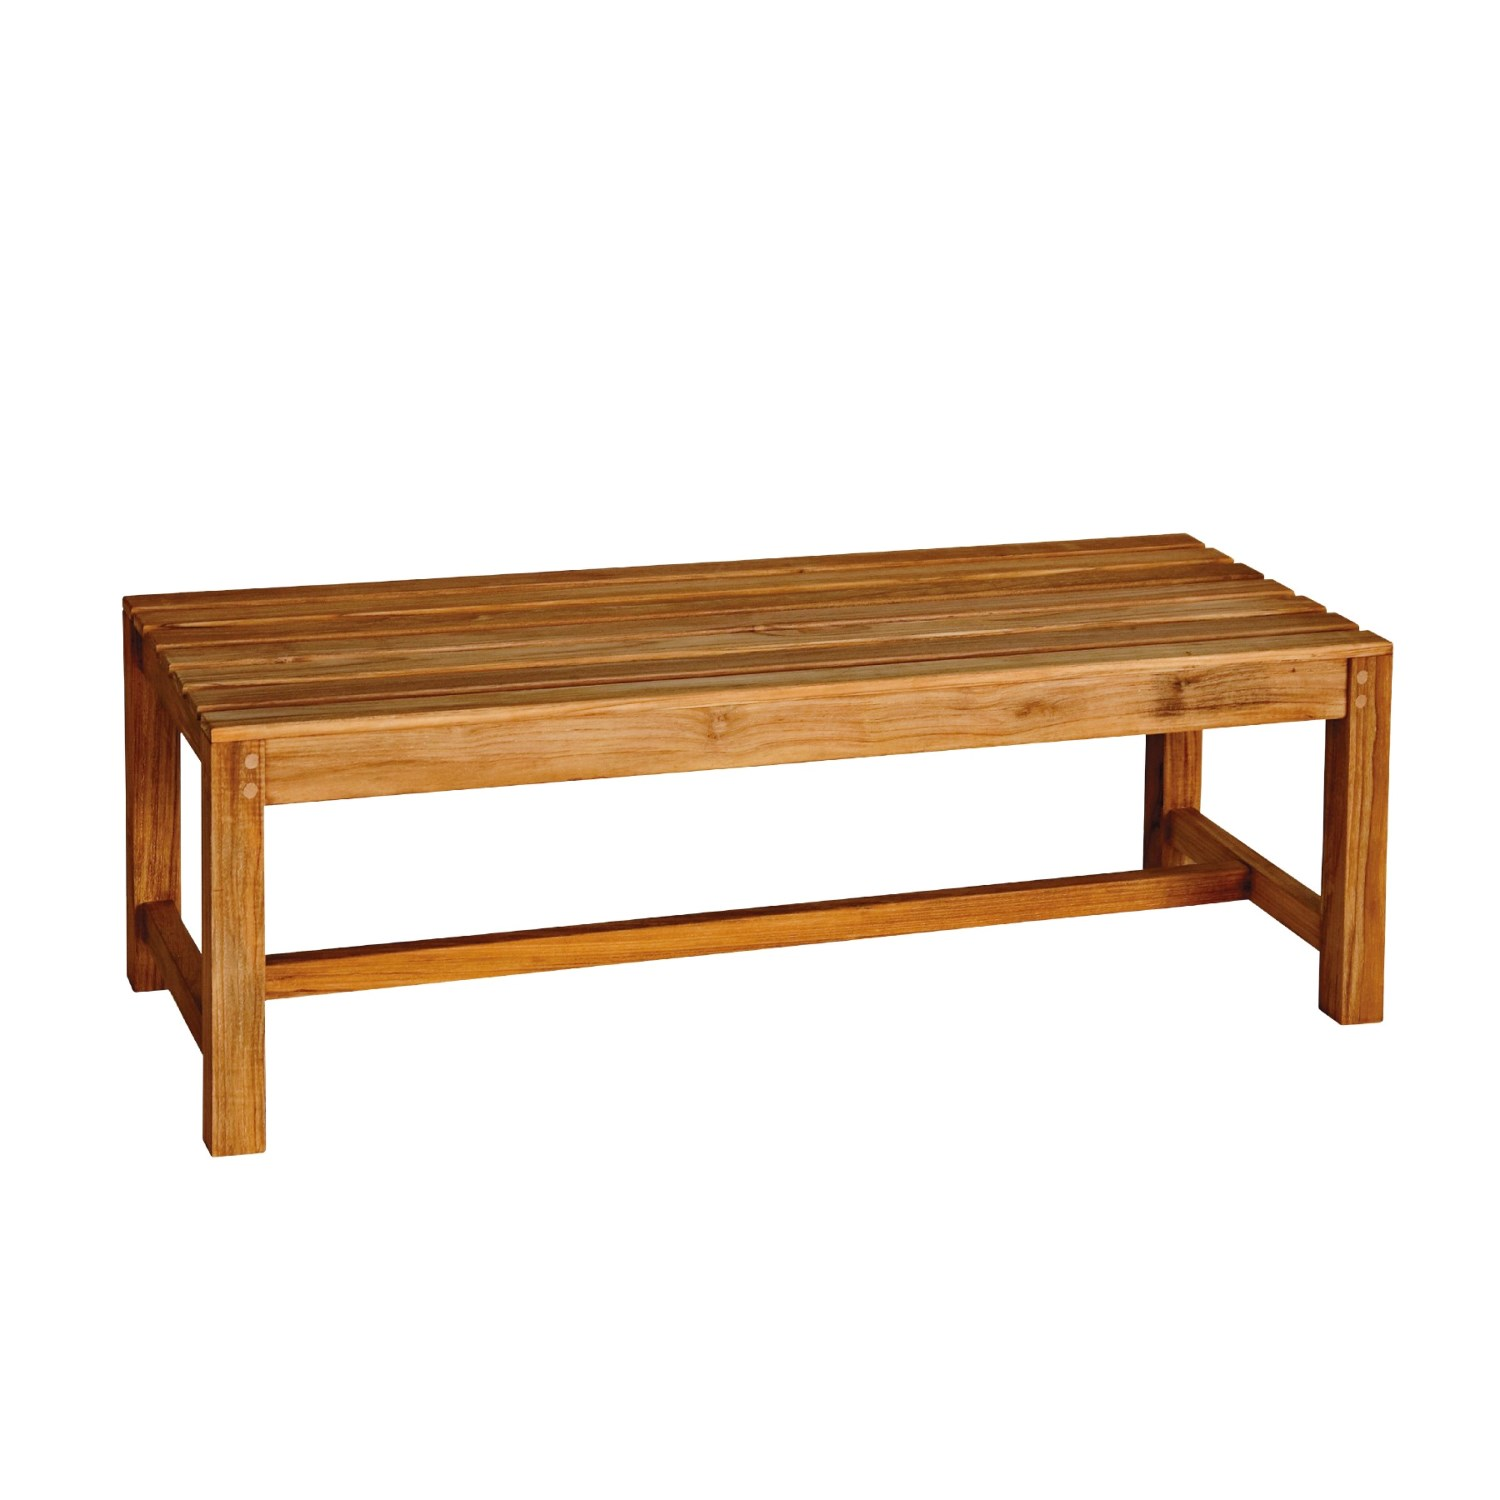 Related informations : Simple Outside Bench Seat Plans